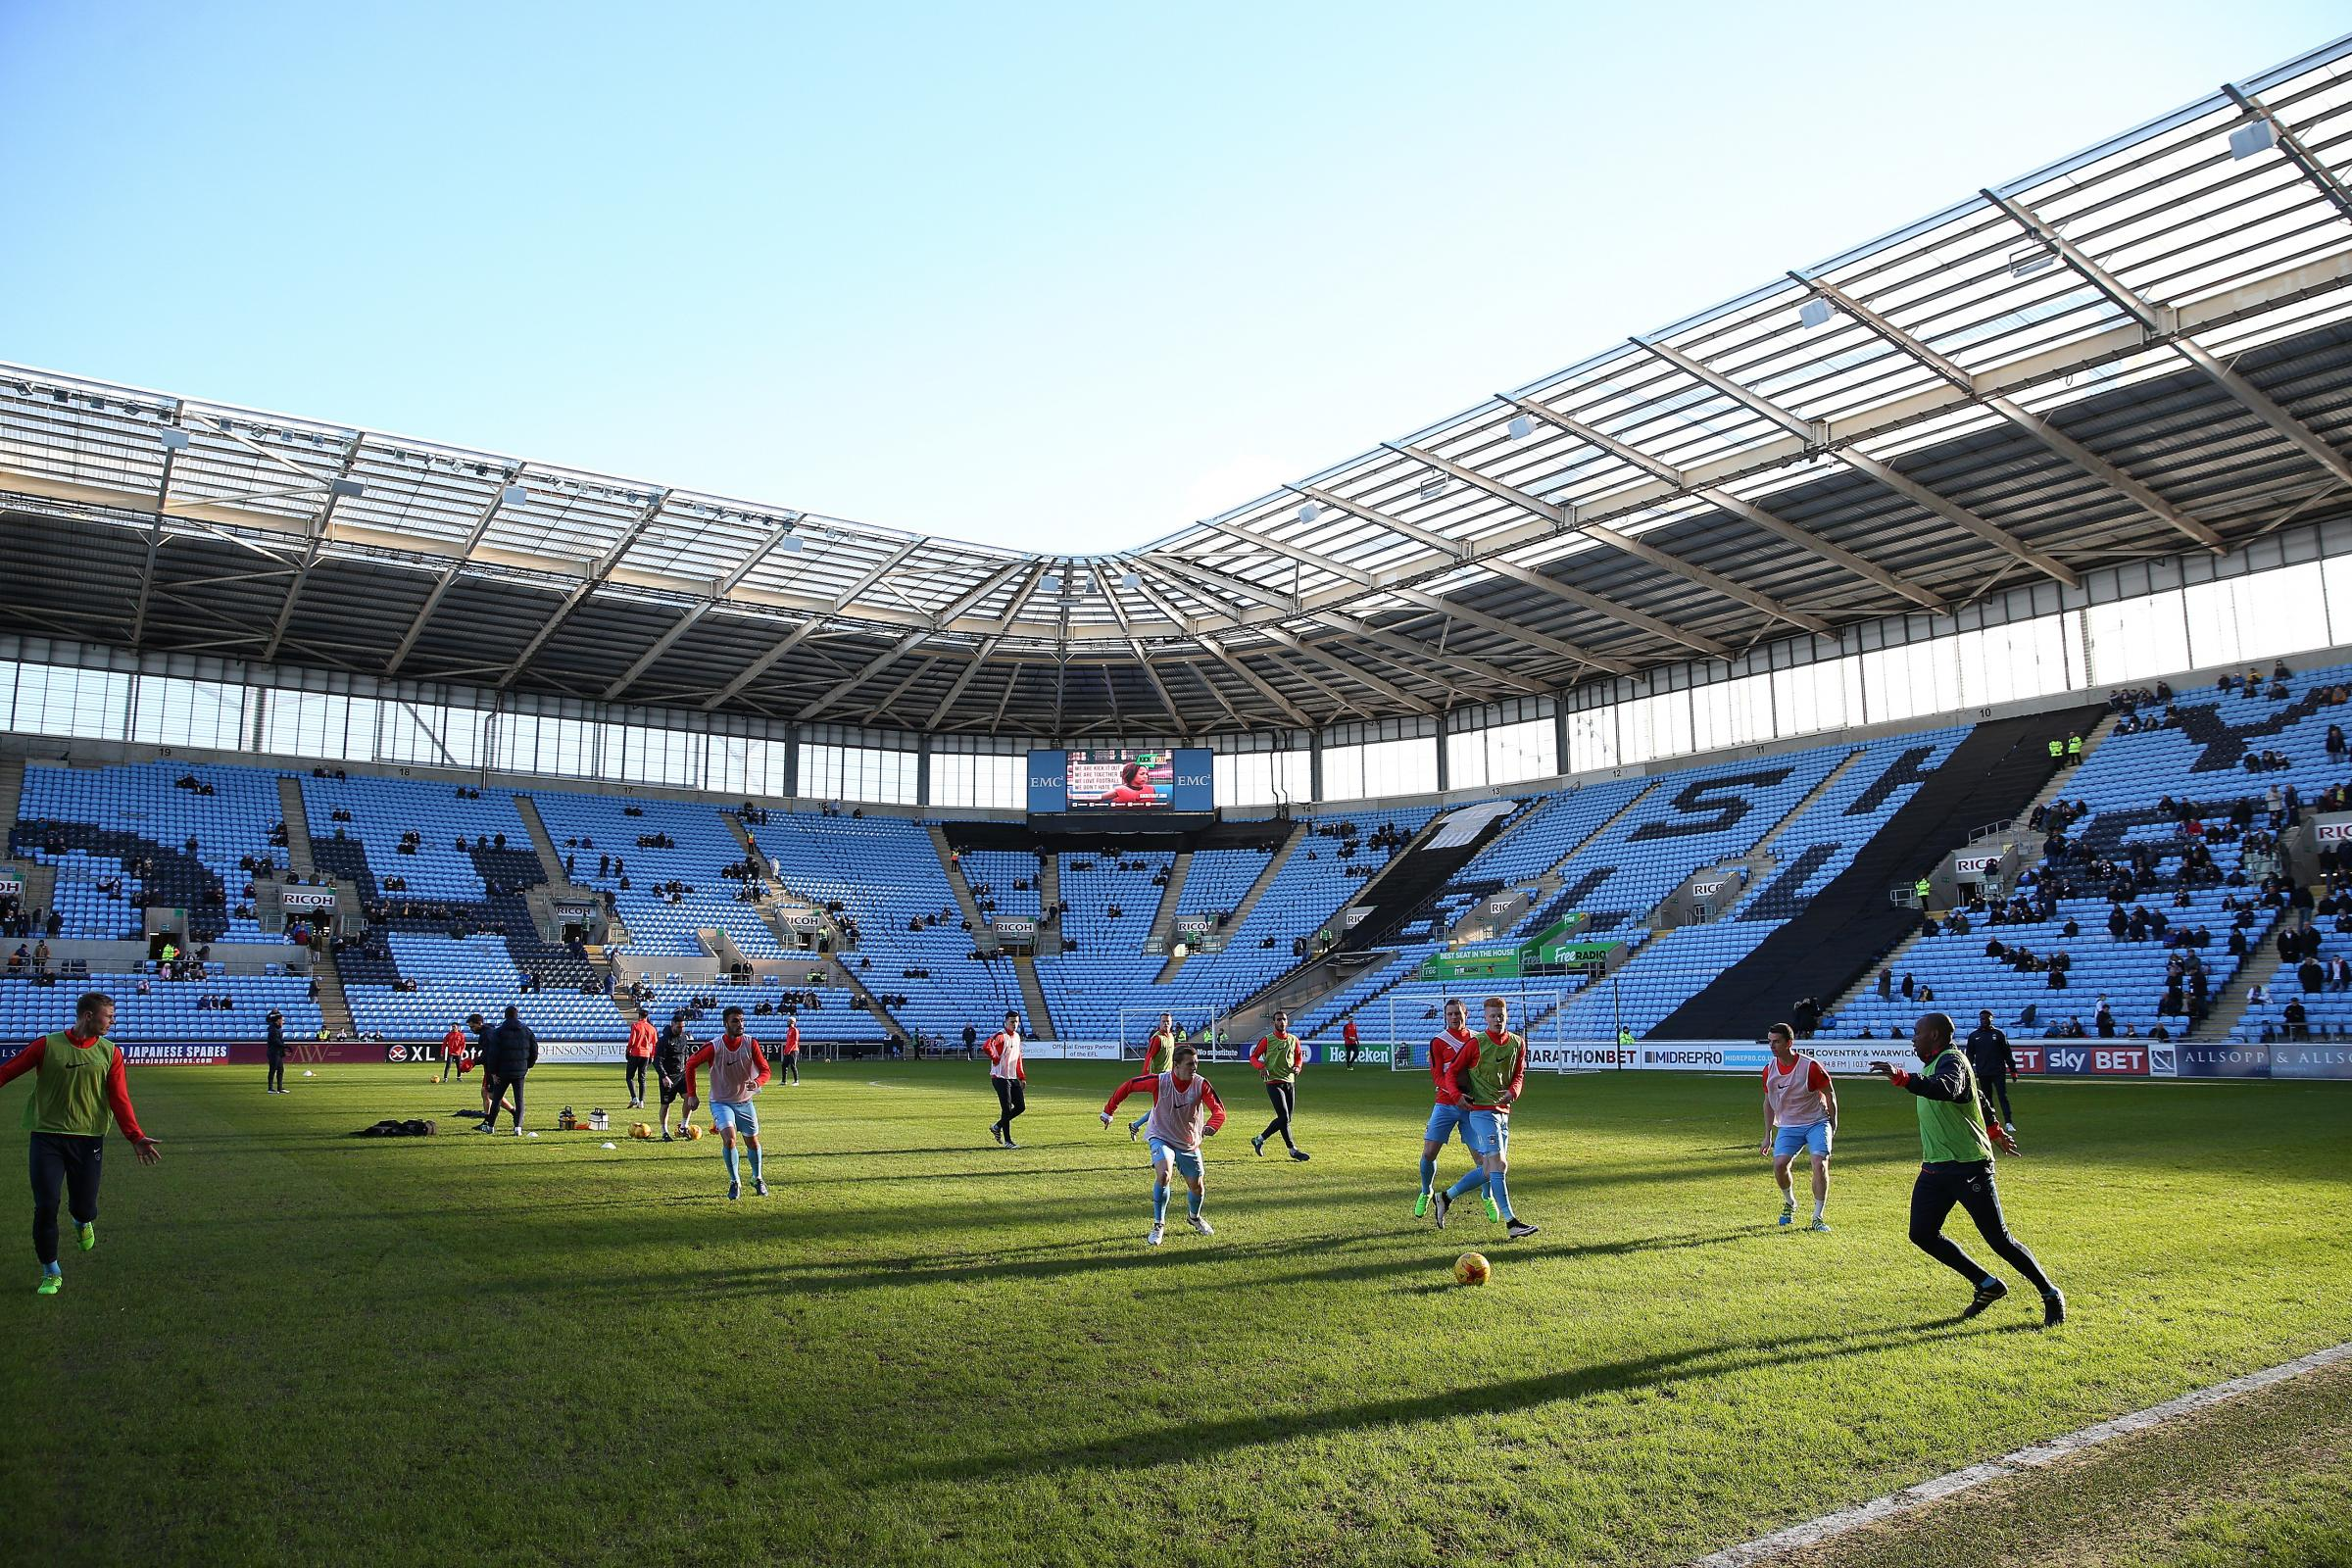 Coventry's current rent deal to play at the Ricoh Arena runs out in May